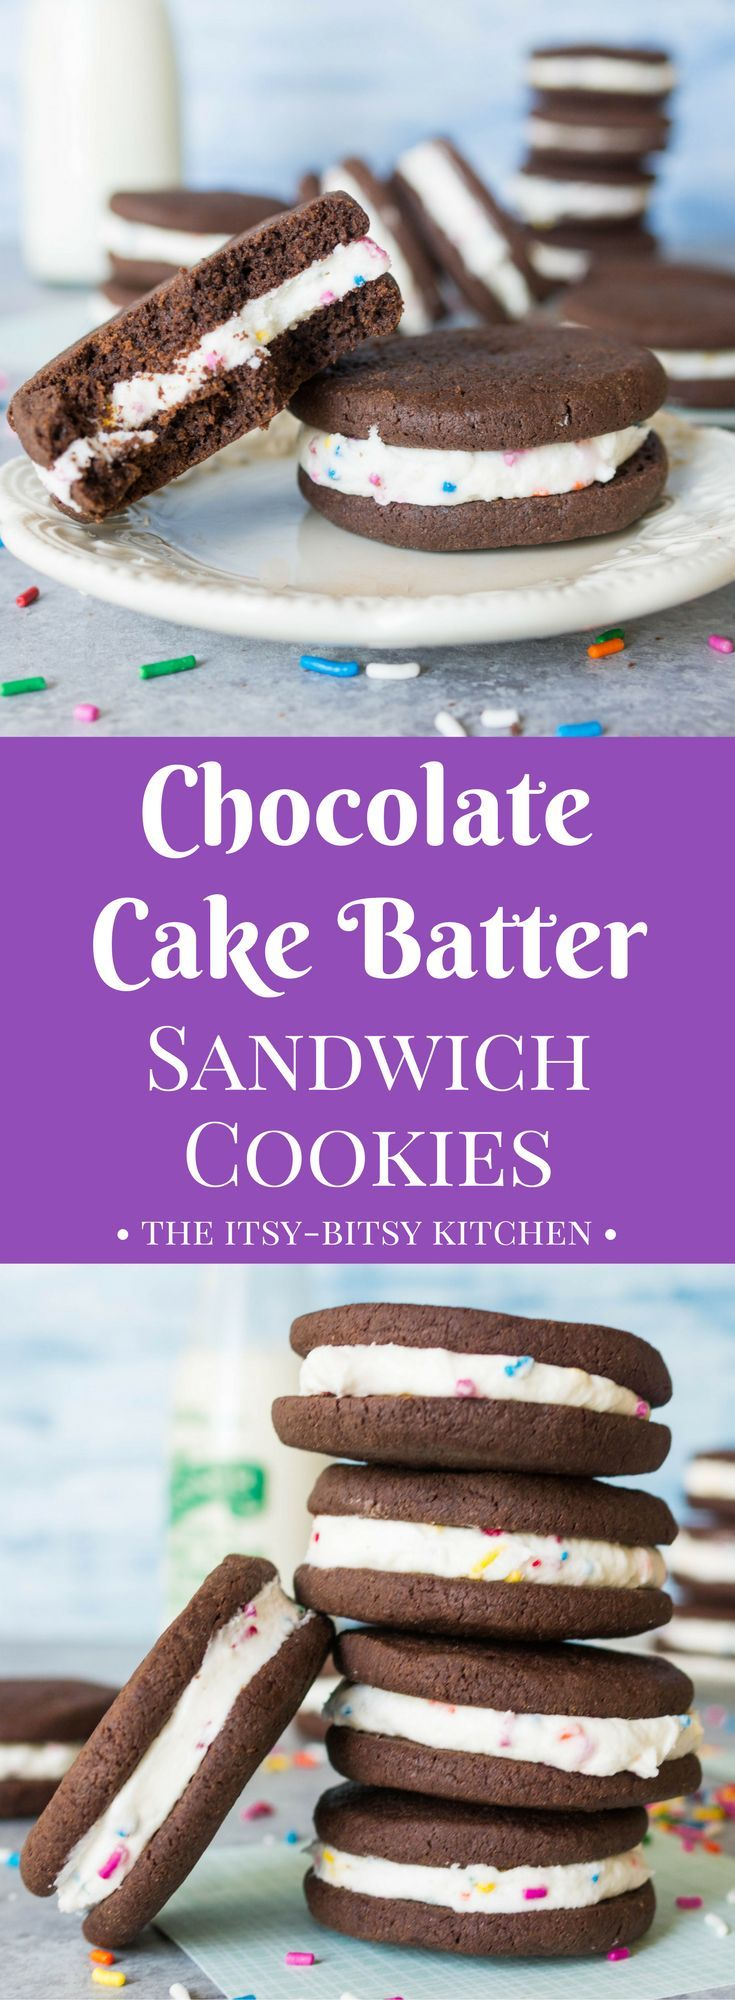 With their cake batter filling and crunchy chocolate cookies, these cake batter #chocolate sandwich #cookies are a sweet treat you need in your life! #Recipe from itsybitsykitchen.com